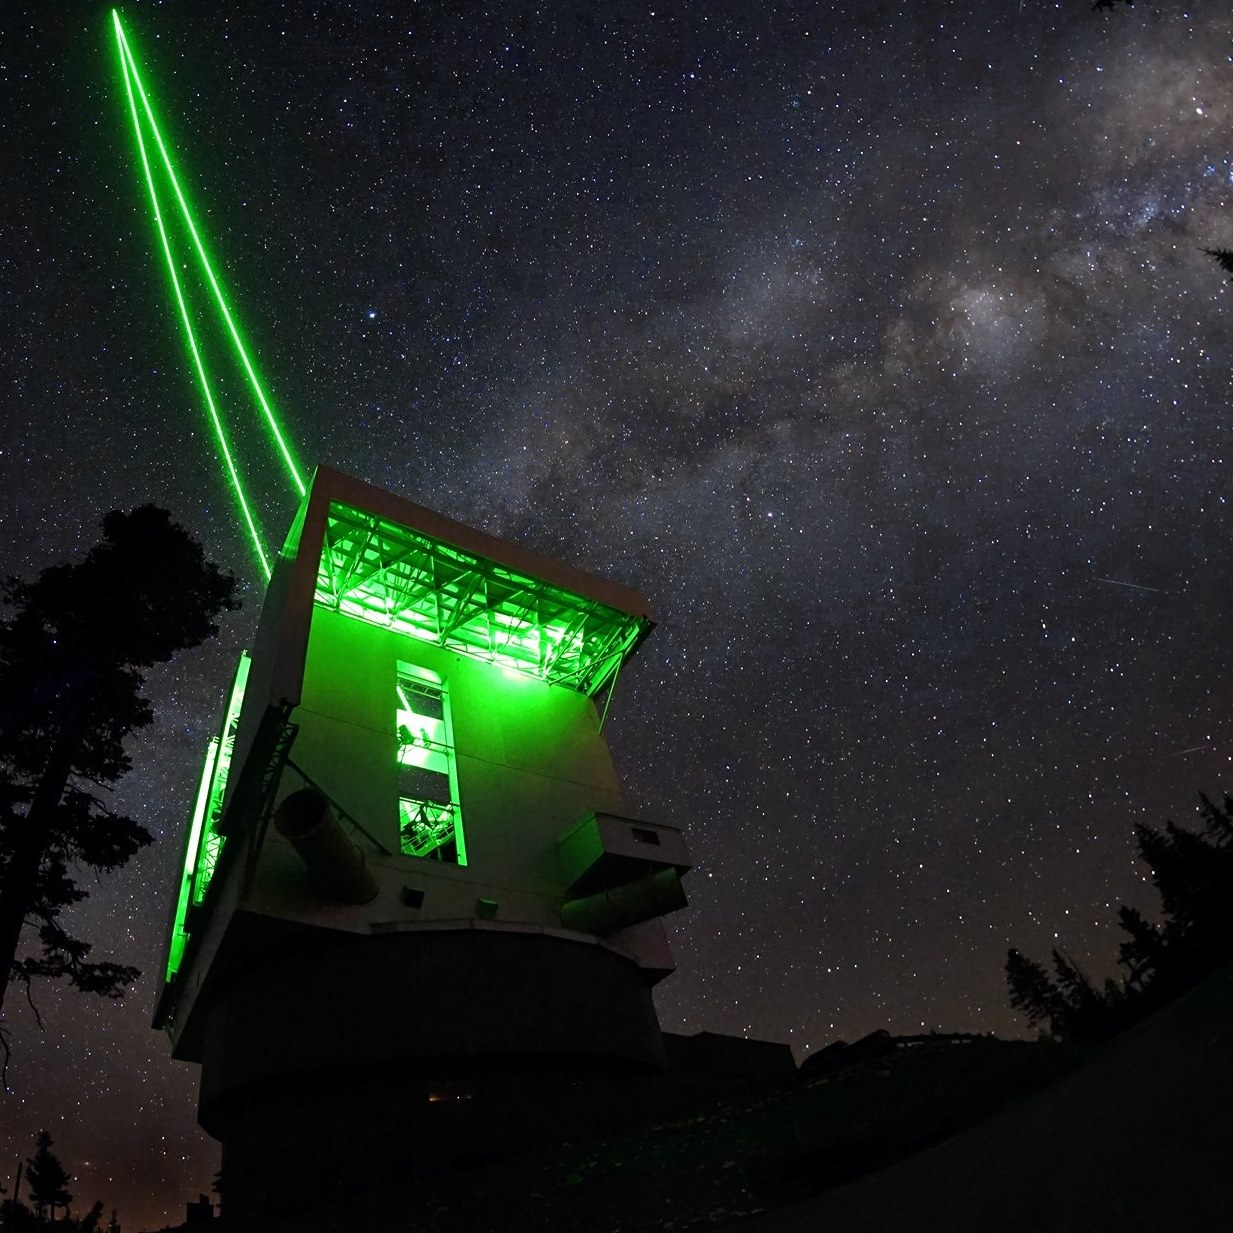 Large Binocular Telescope with the green ARGOS laser guide star system active.